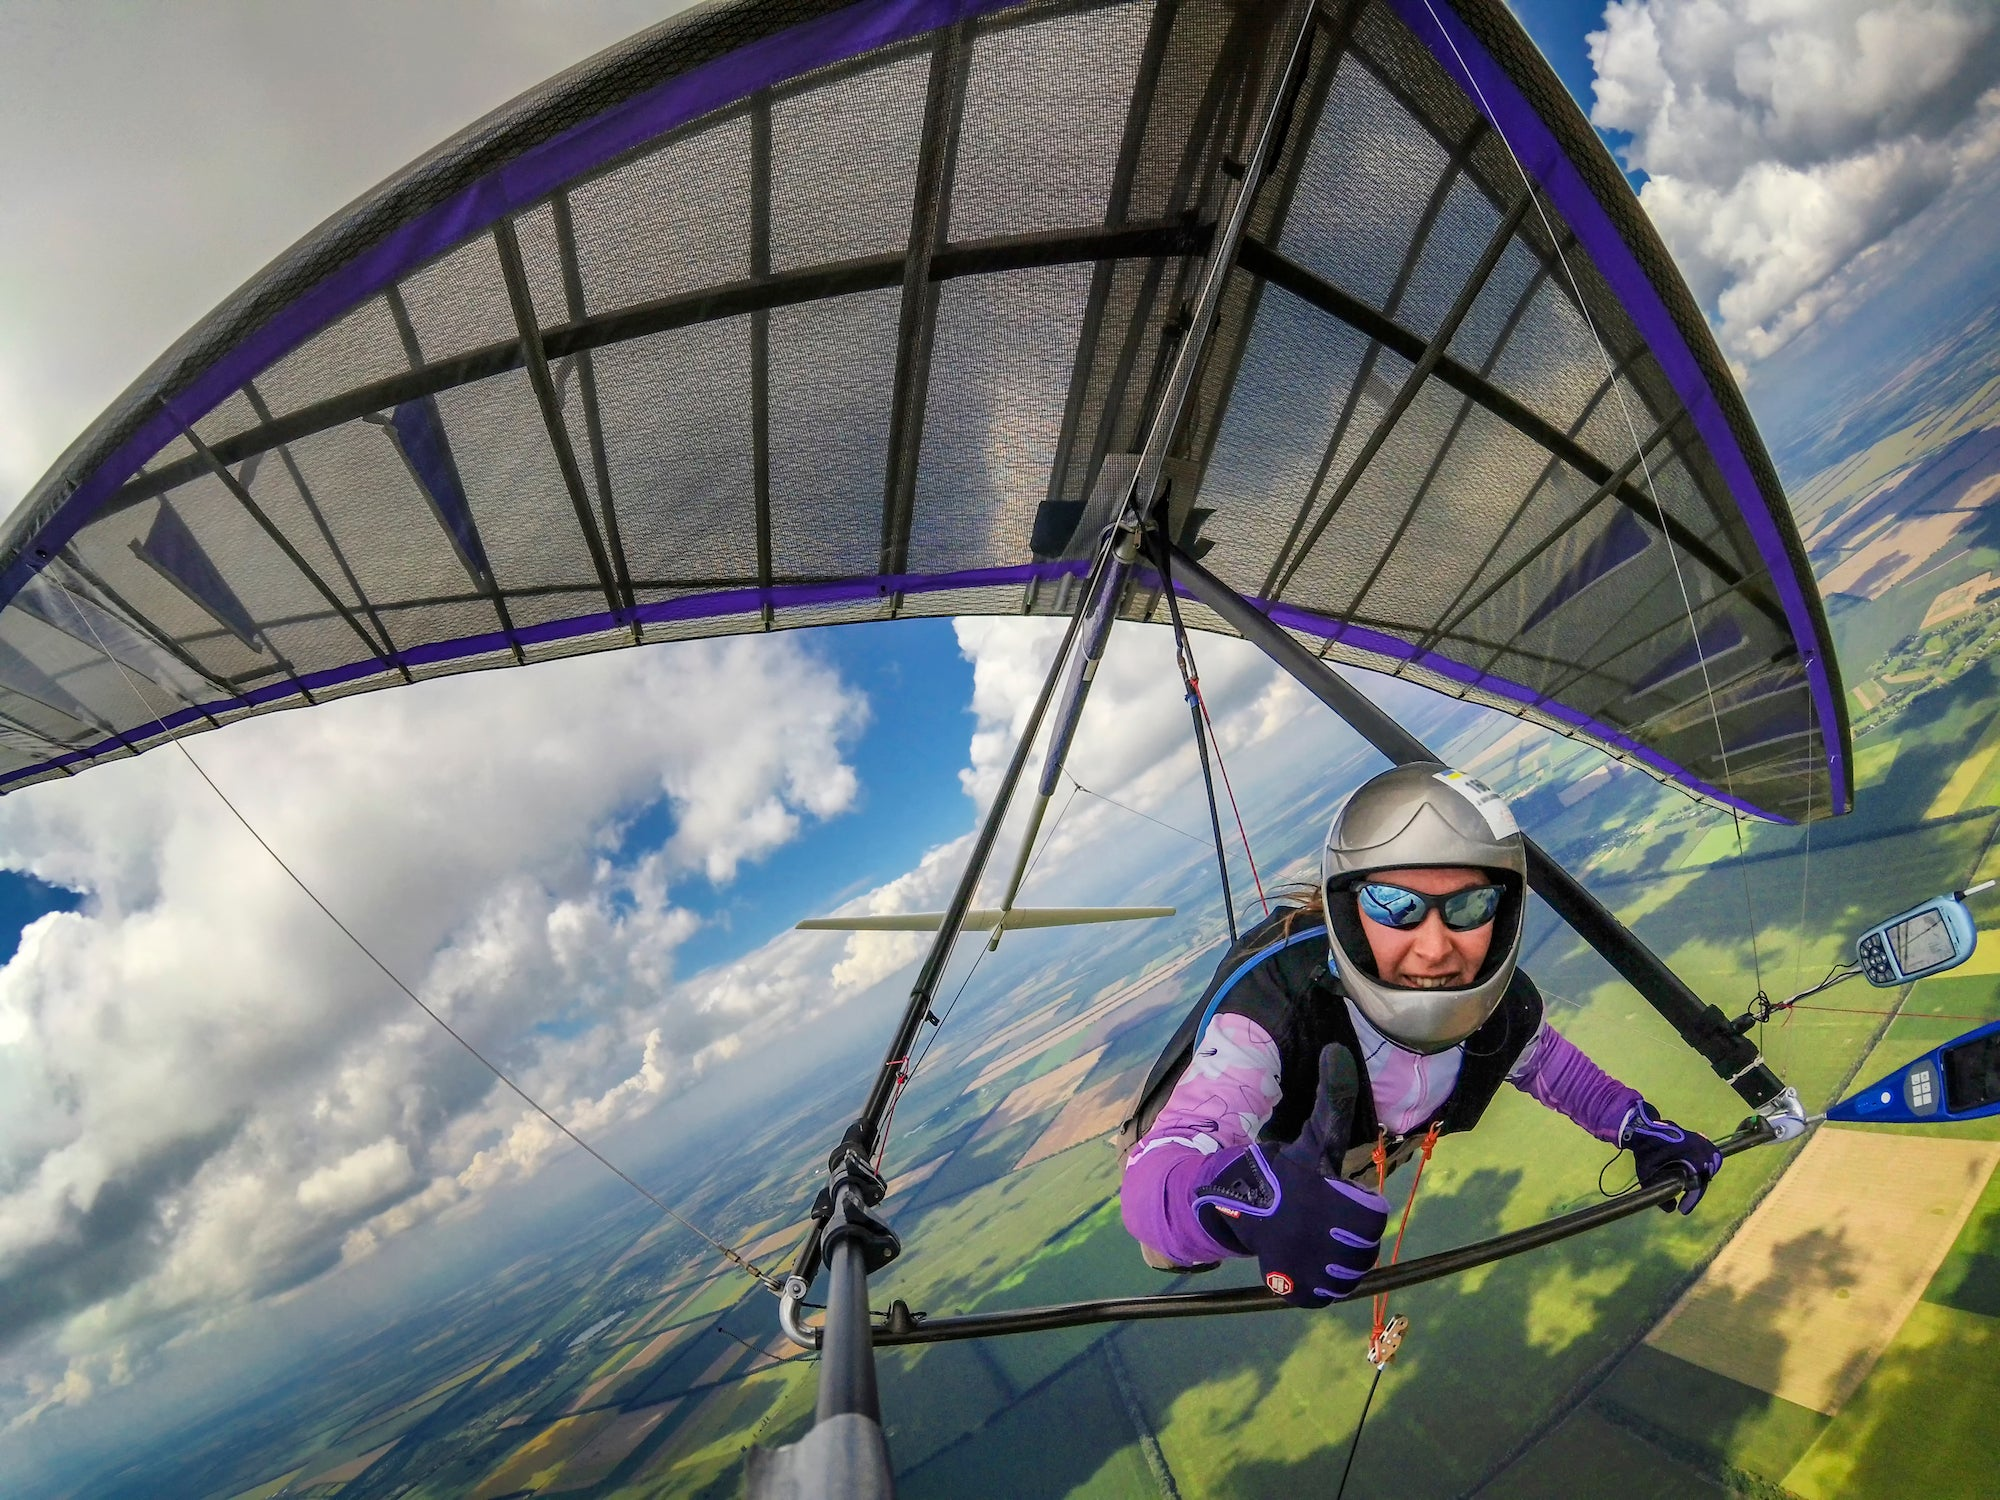 Club Fearless Test #4 Hang Gliding SOLO from 1000 feet or higher